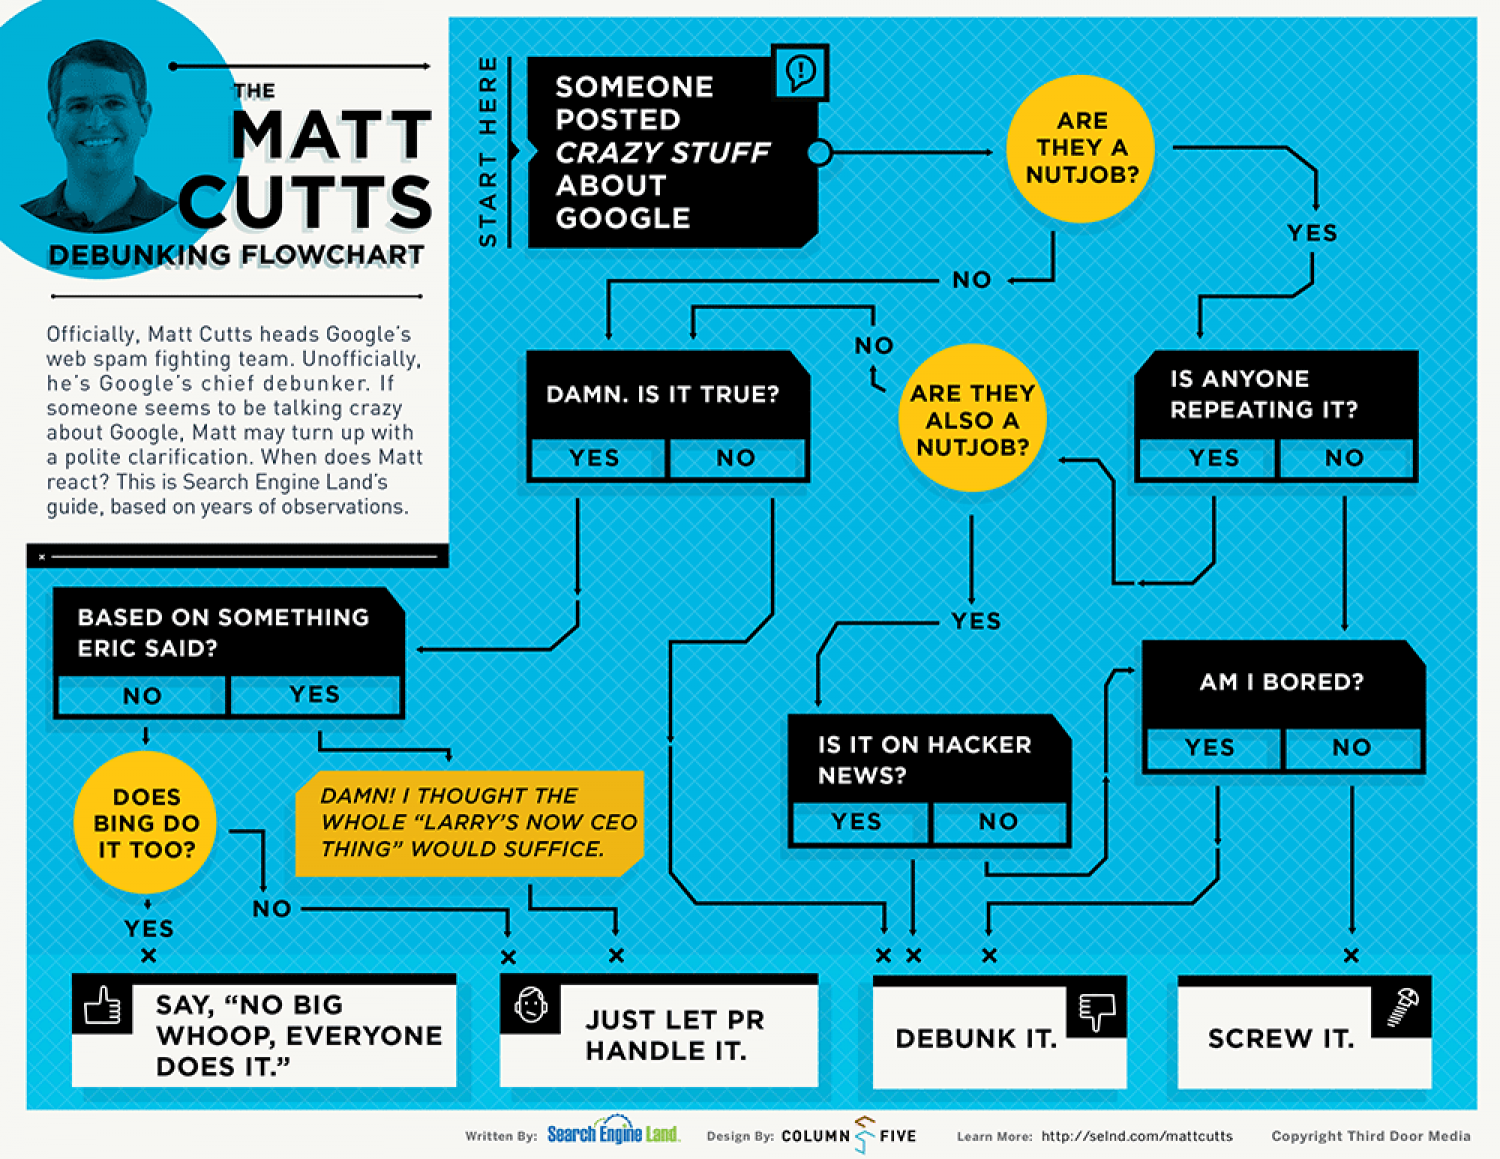 The Matt Cutts Debunking Flowchart Infographic